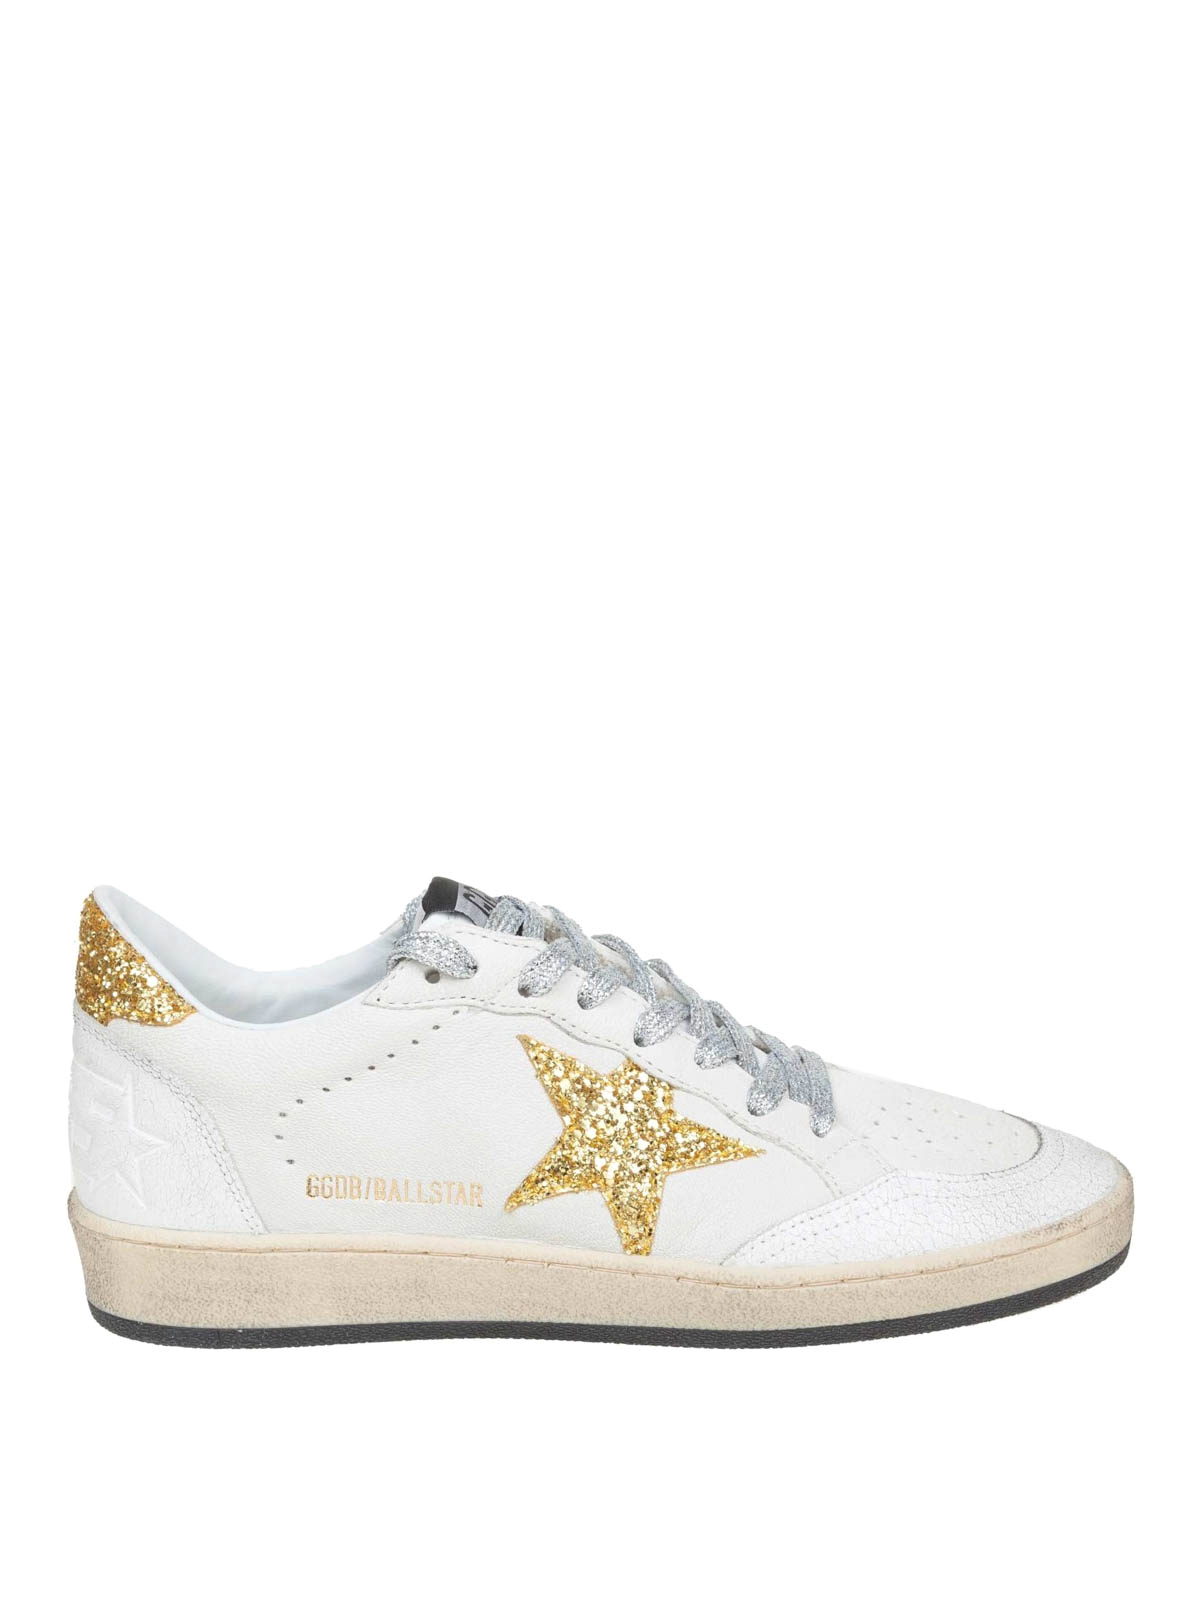 0a39c7323b15 Golden Goose - Ball Star sneakers with glitter details - trainers ...